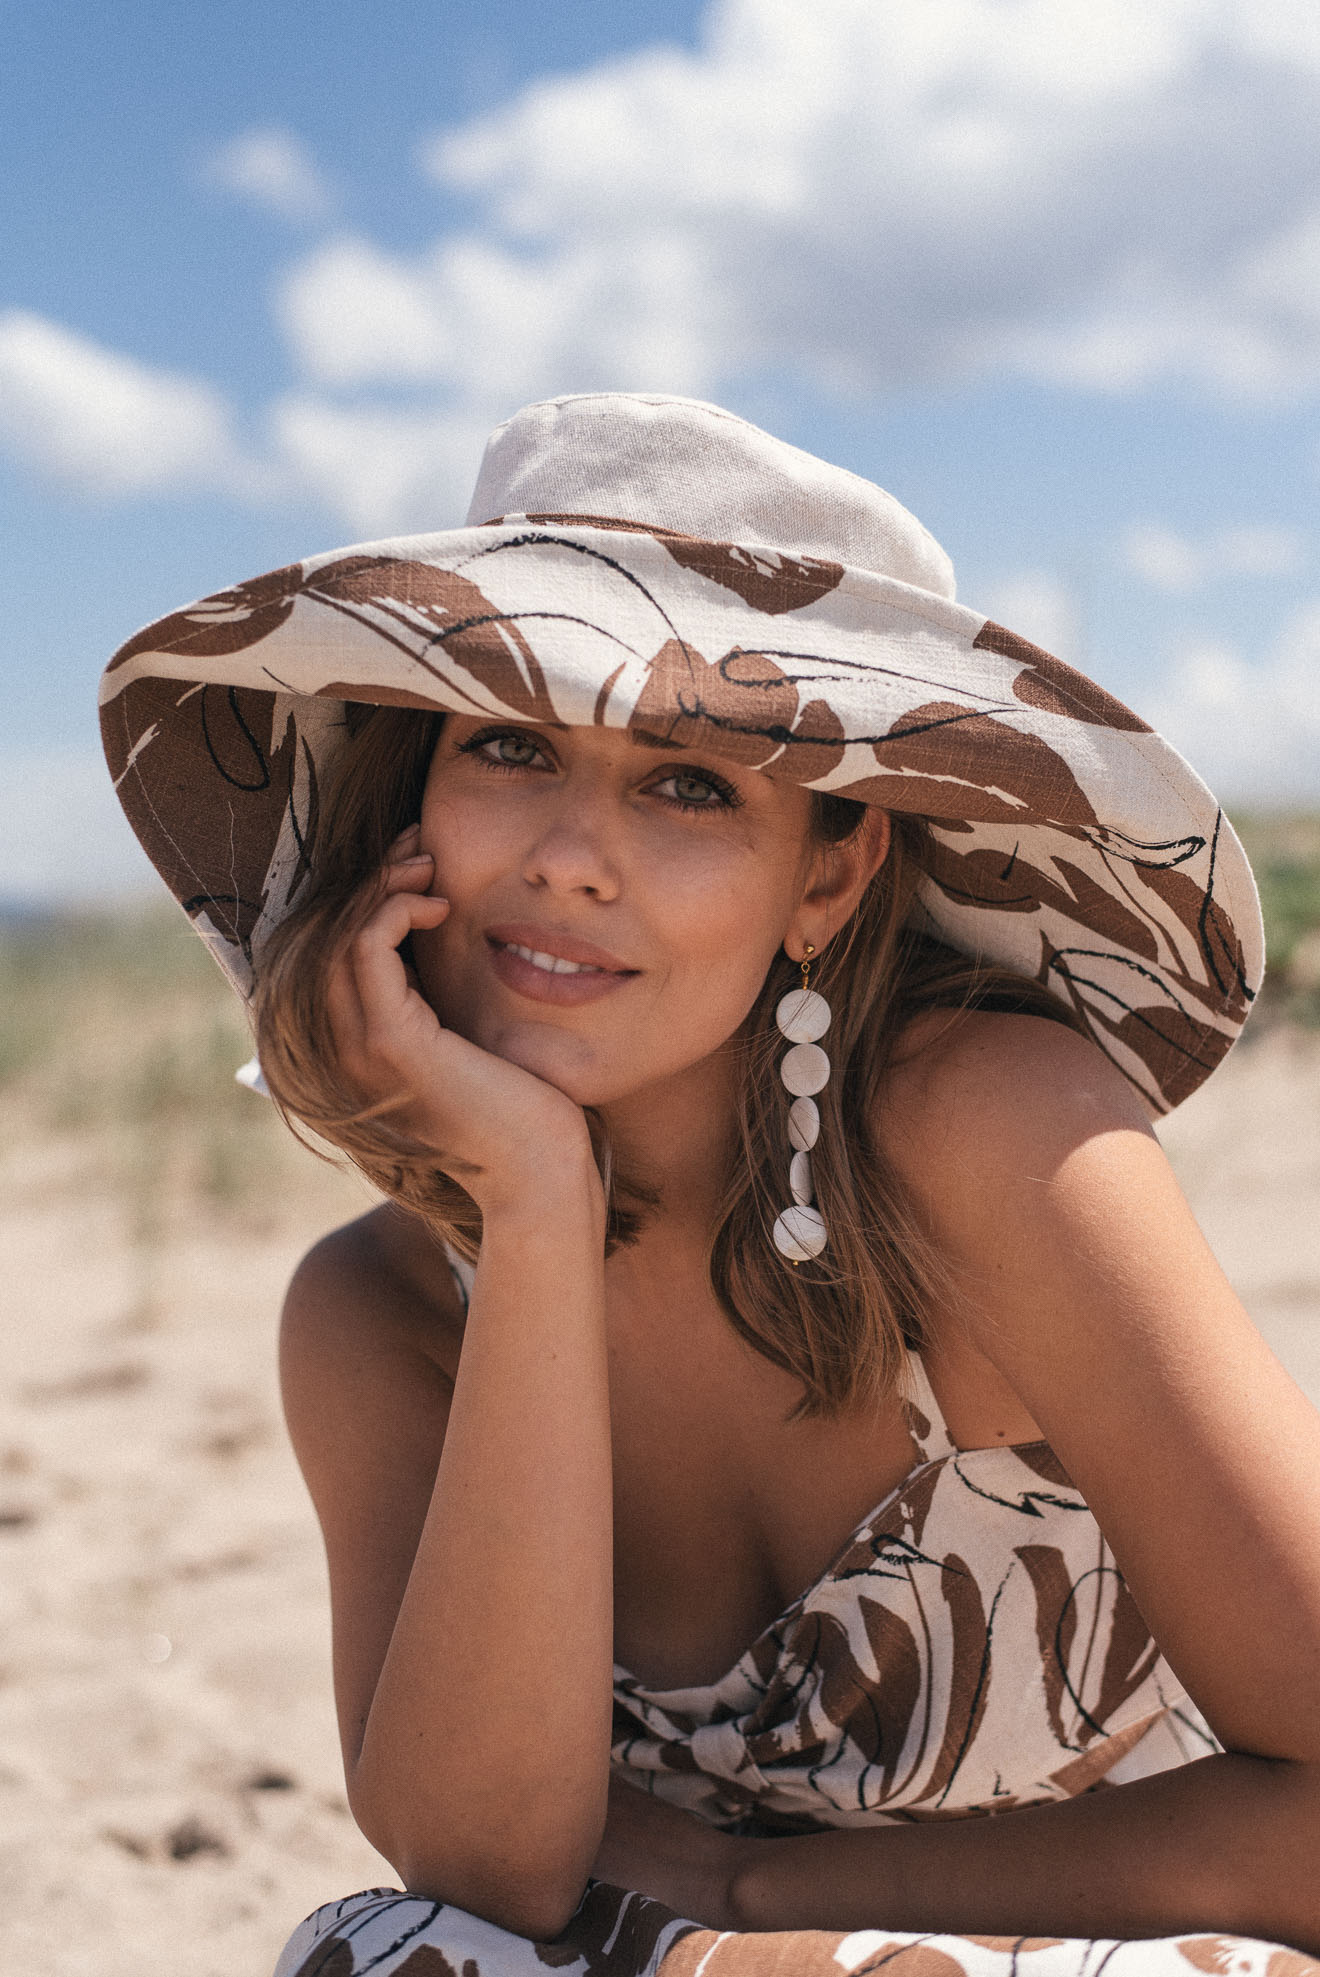 Sun hat for summer days